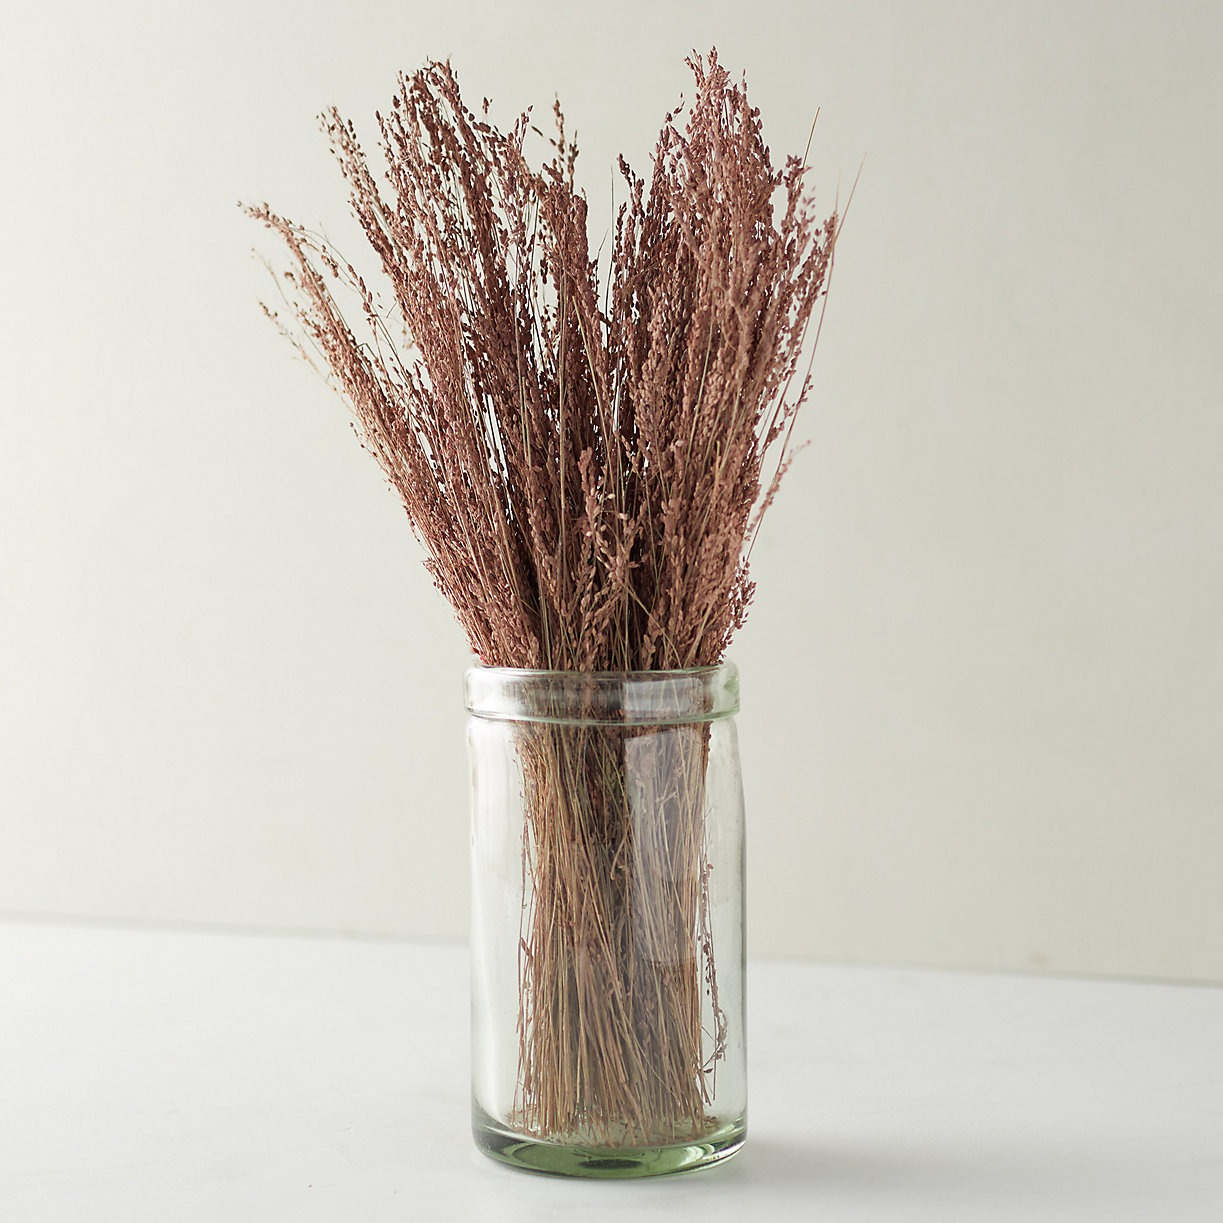 blush preserved star grass dried flowers bunch from Terrain